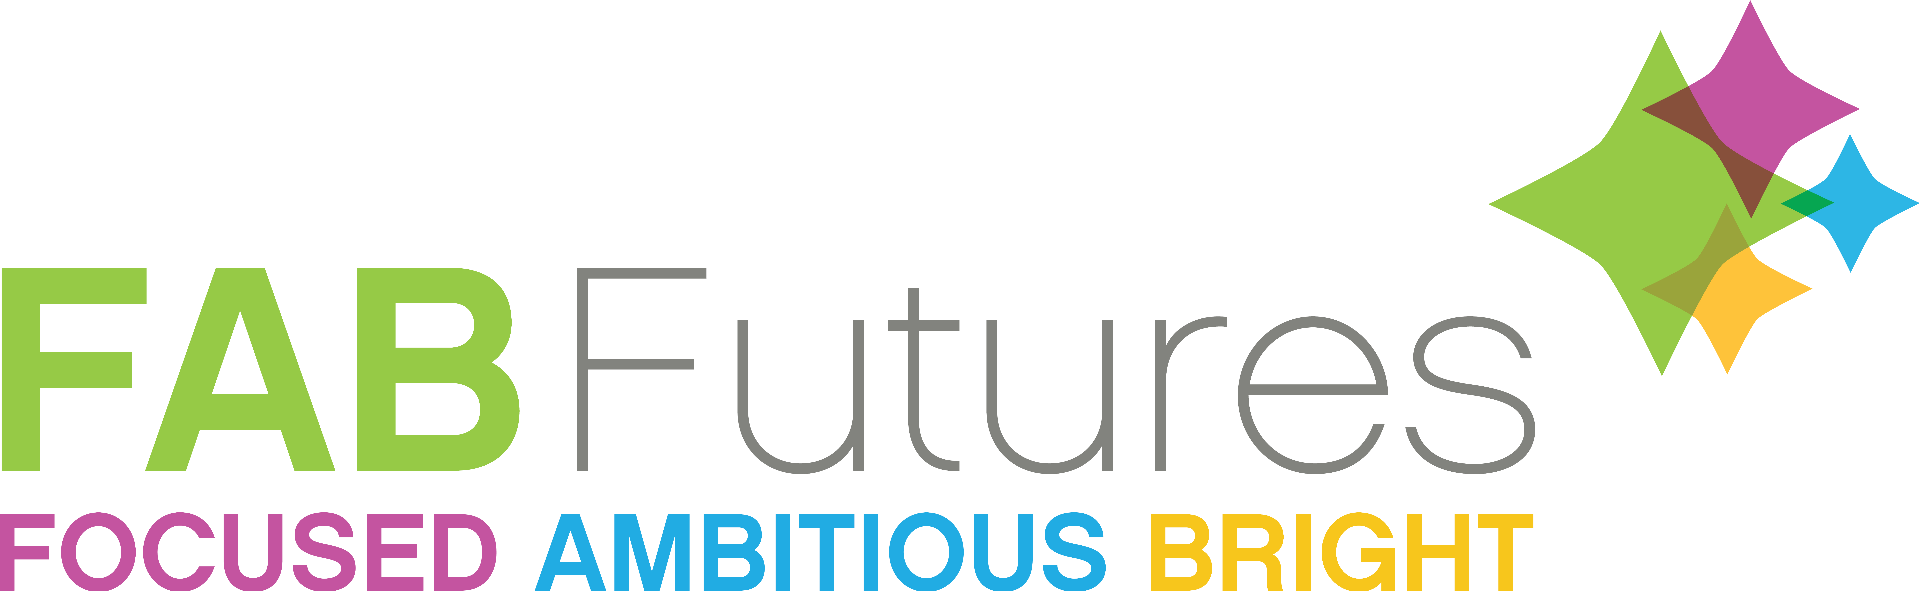 FAB Futures, FOCUSED AMBITIOUS BRIGHT Logo